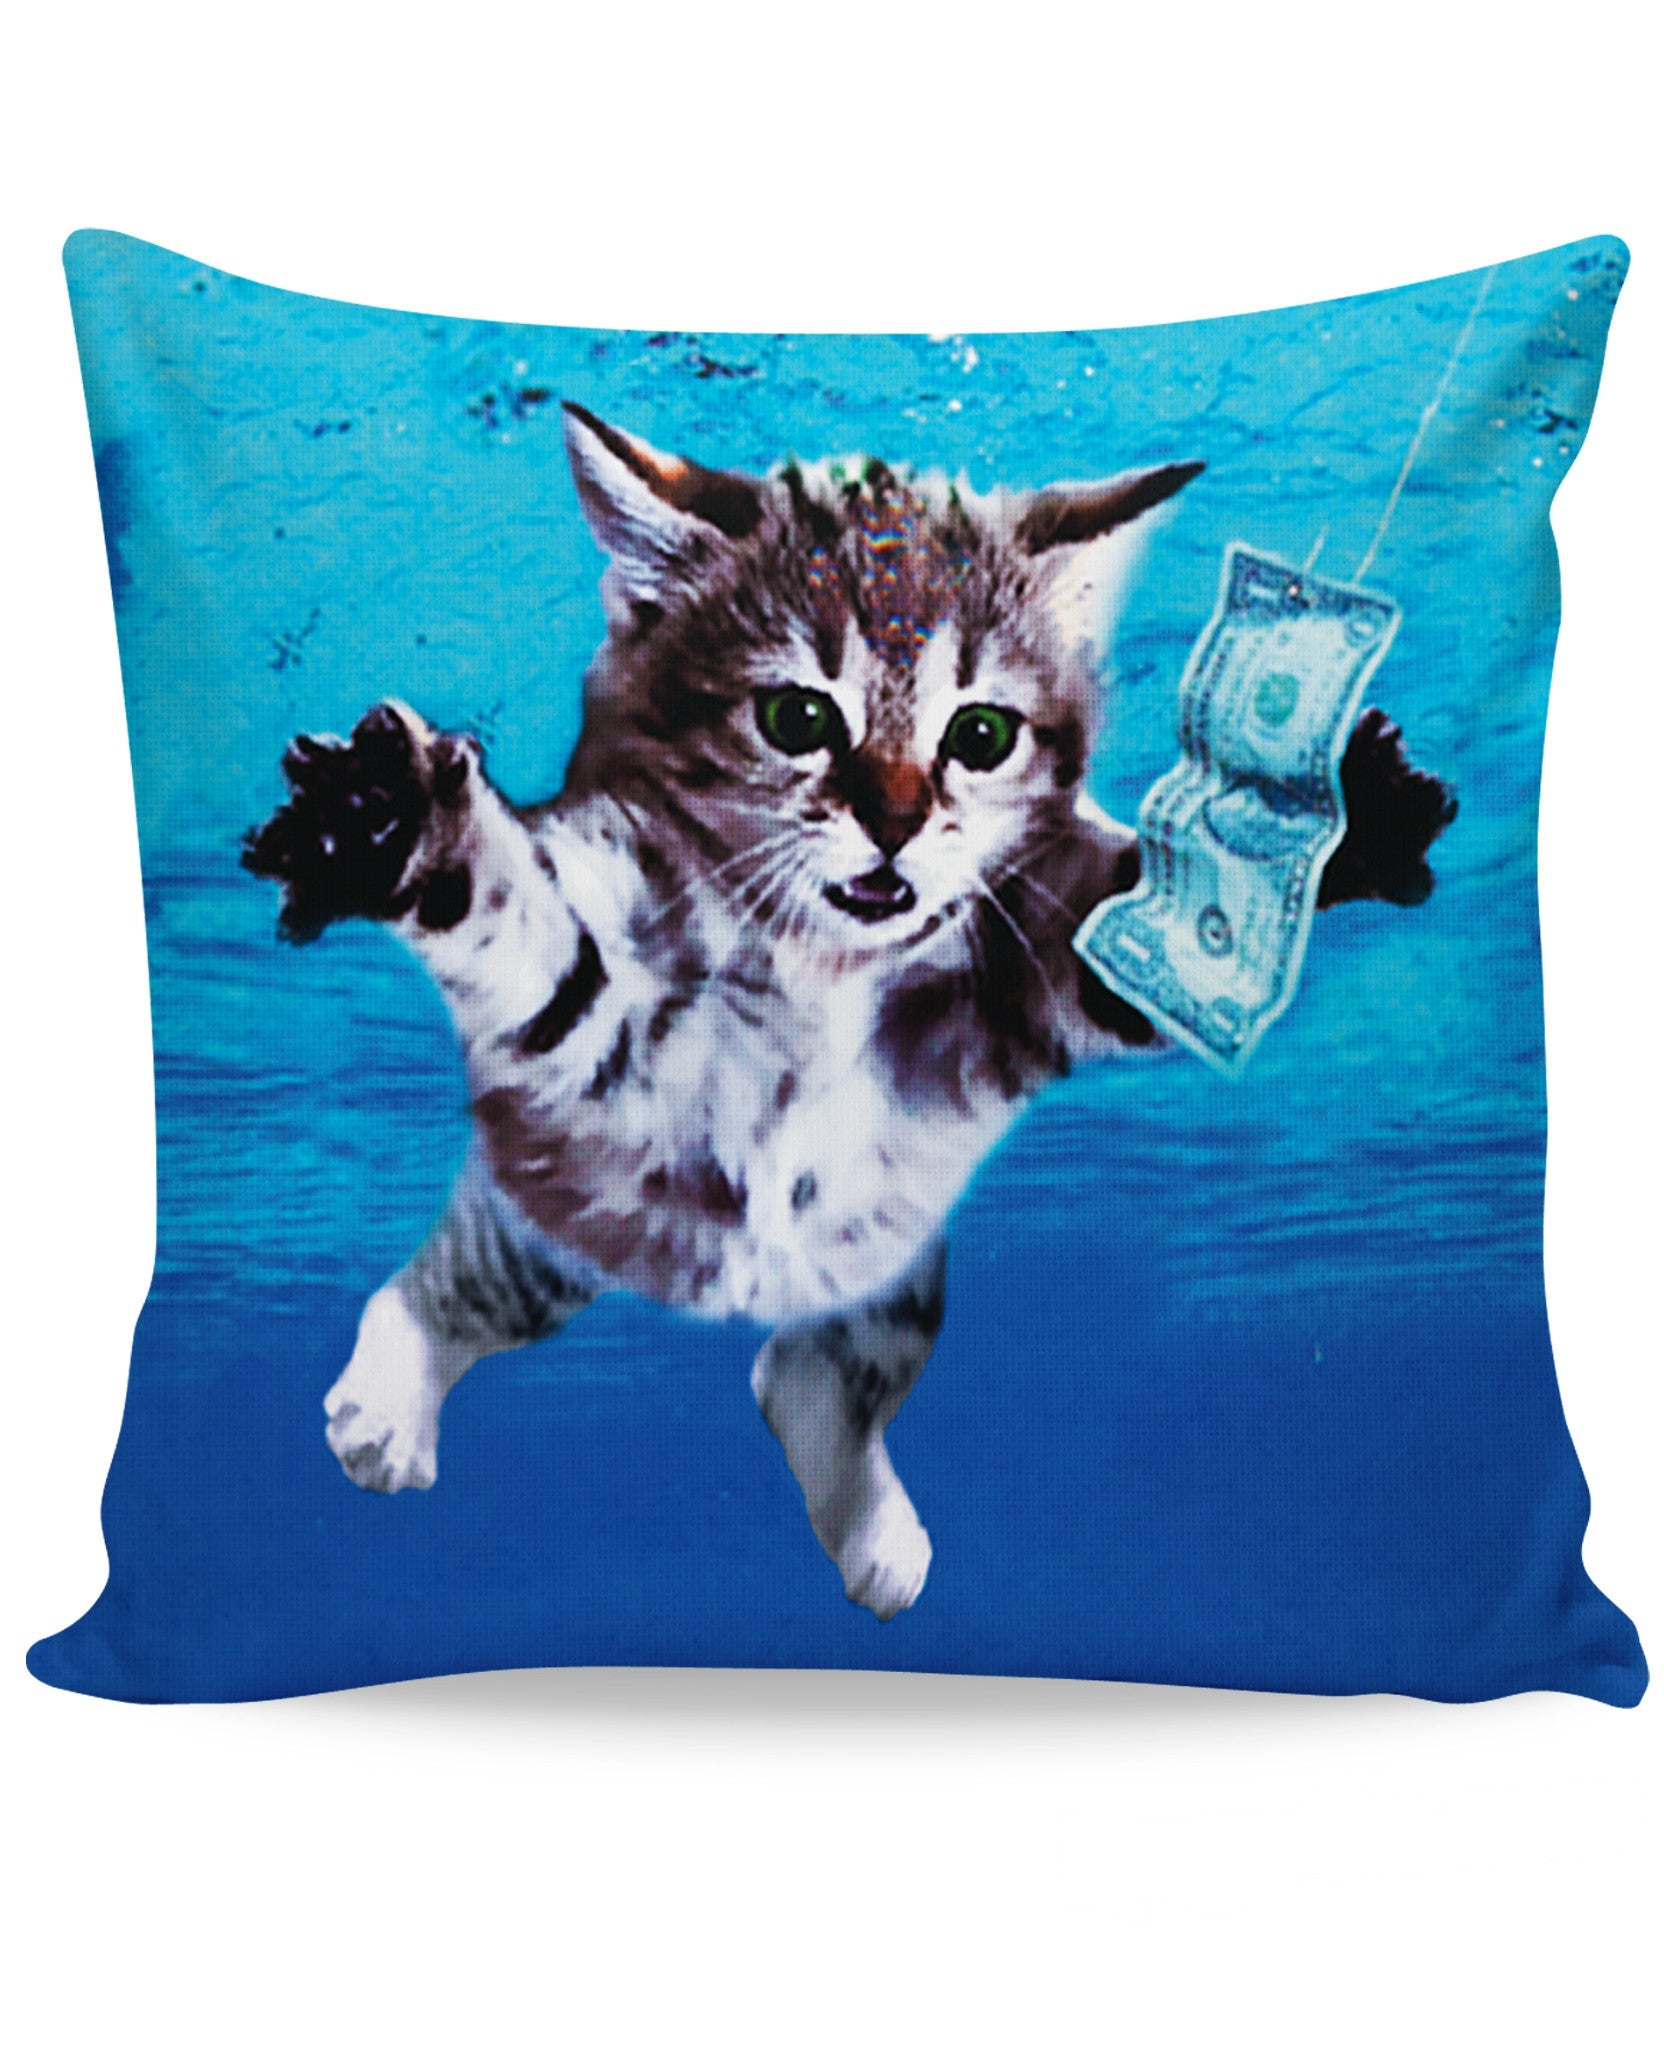 Cat Cobain Couch Pillow - TShirtsRUS.co